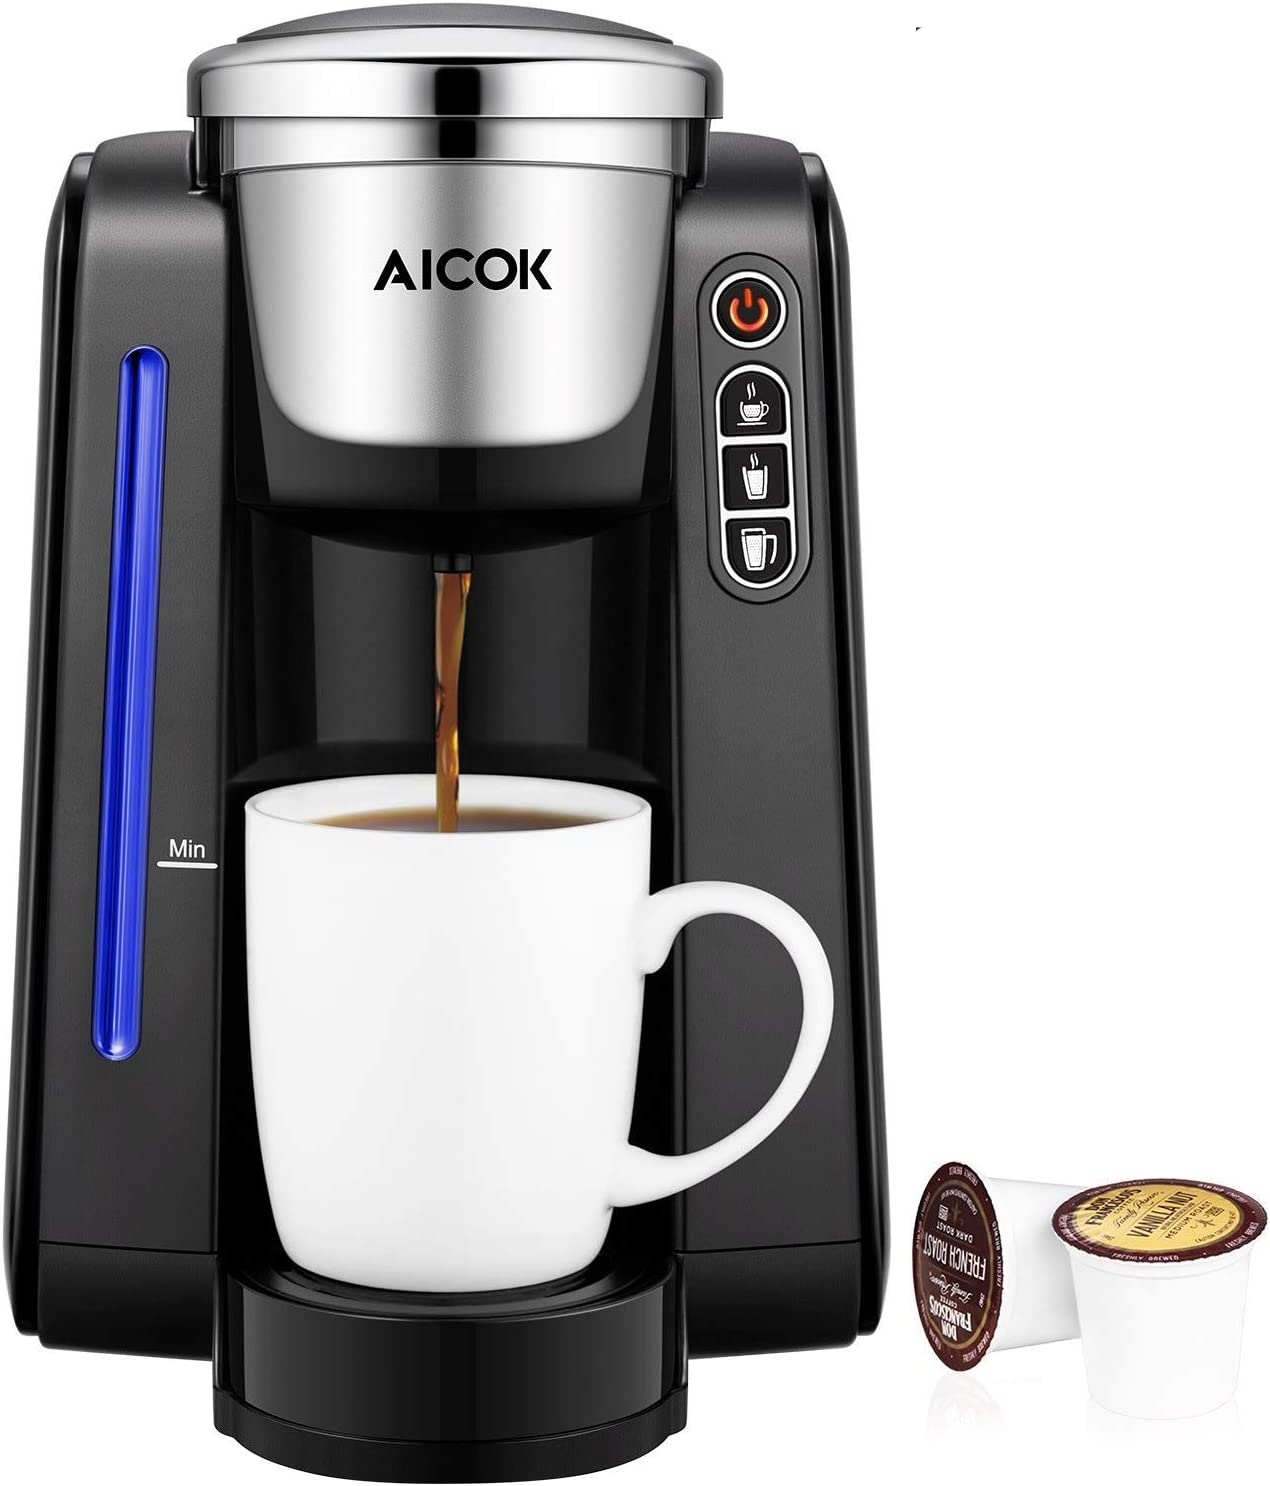 AICOK Single Serve Programmable Coffee Maker, 5 Brew Sizes One Cup Coffee Machine for Most Single Cup Pods Including 1.0&2.0 K-CUP pods, 45 OZ Large ...